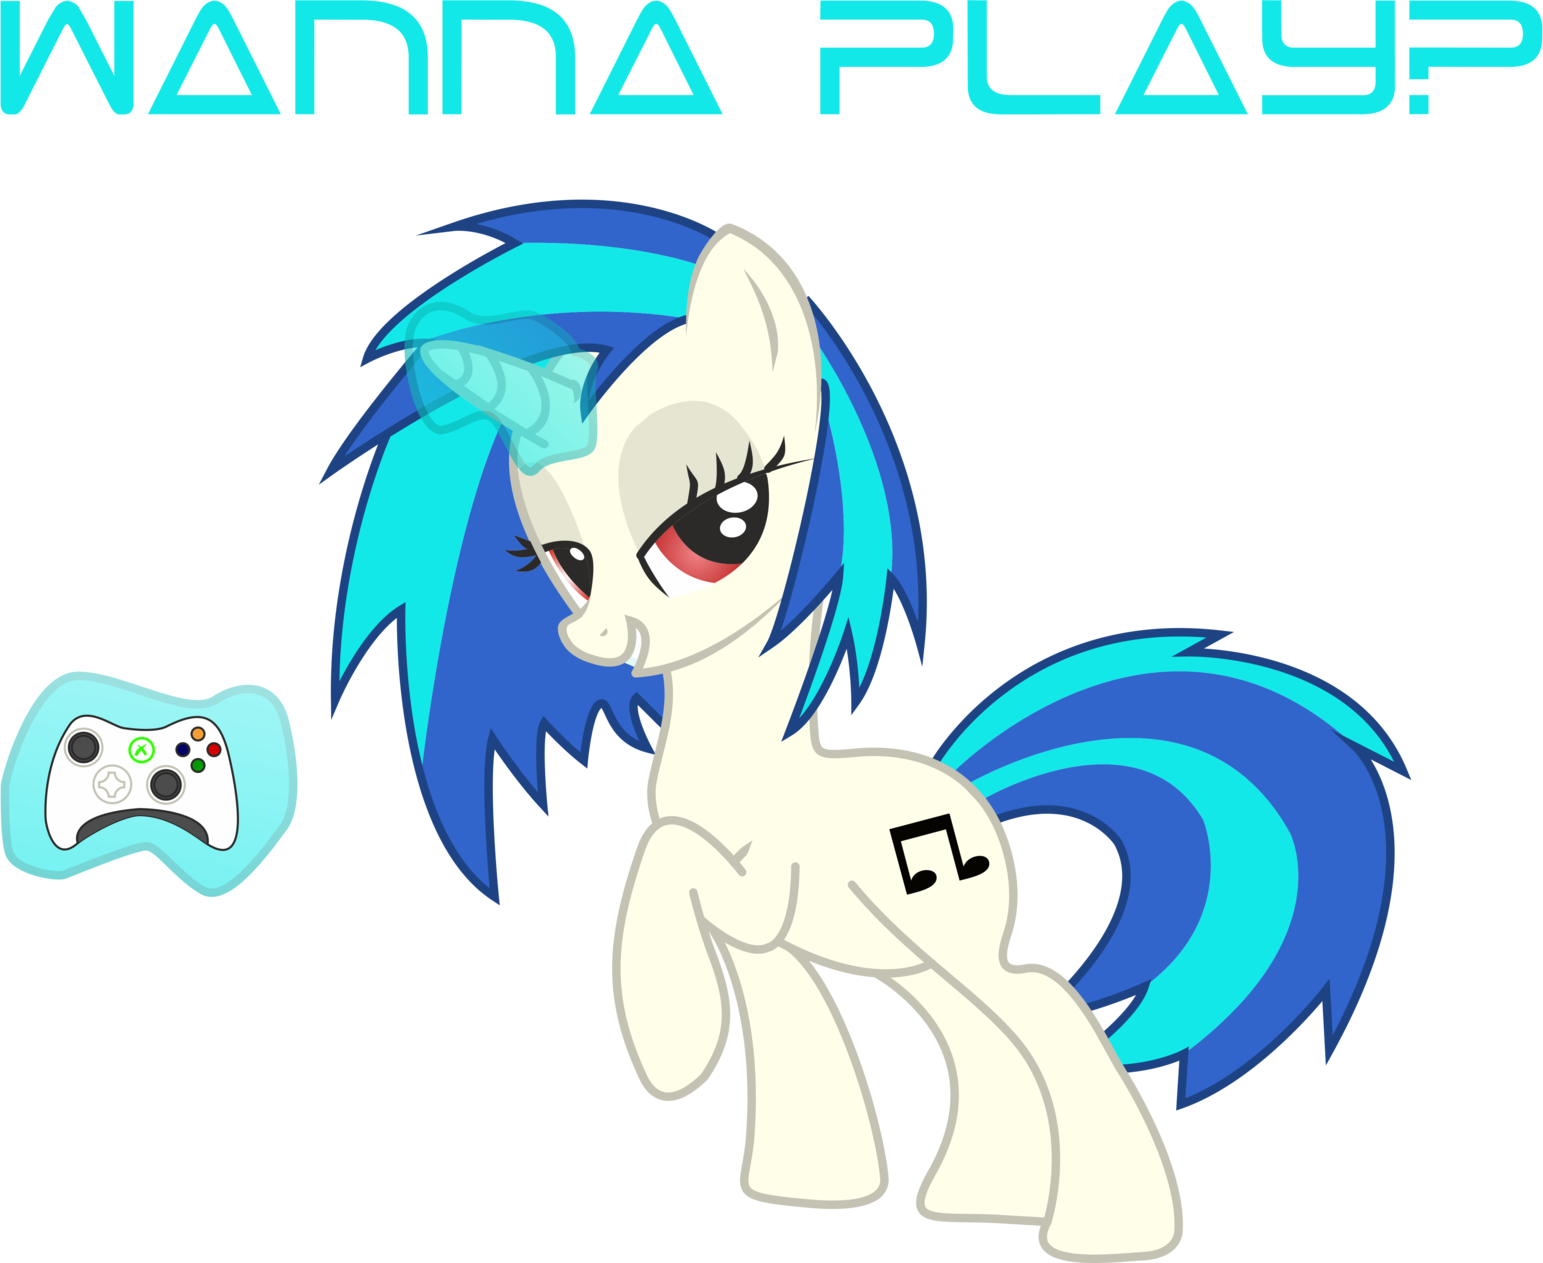 """Wanna Play?"" font?"